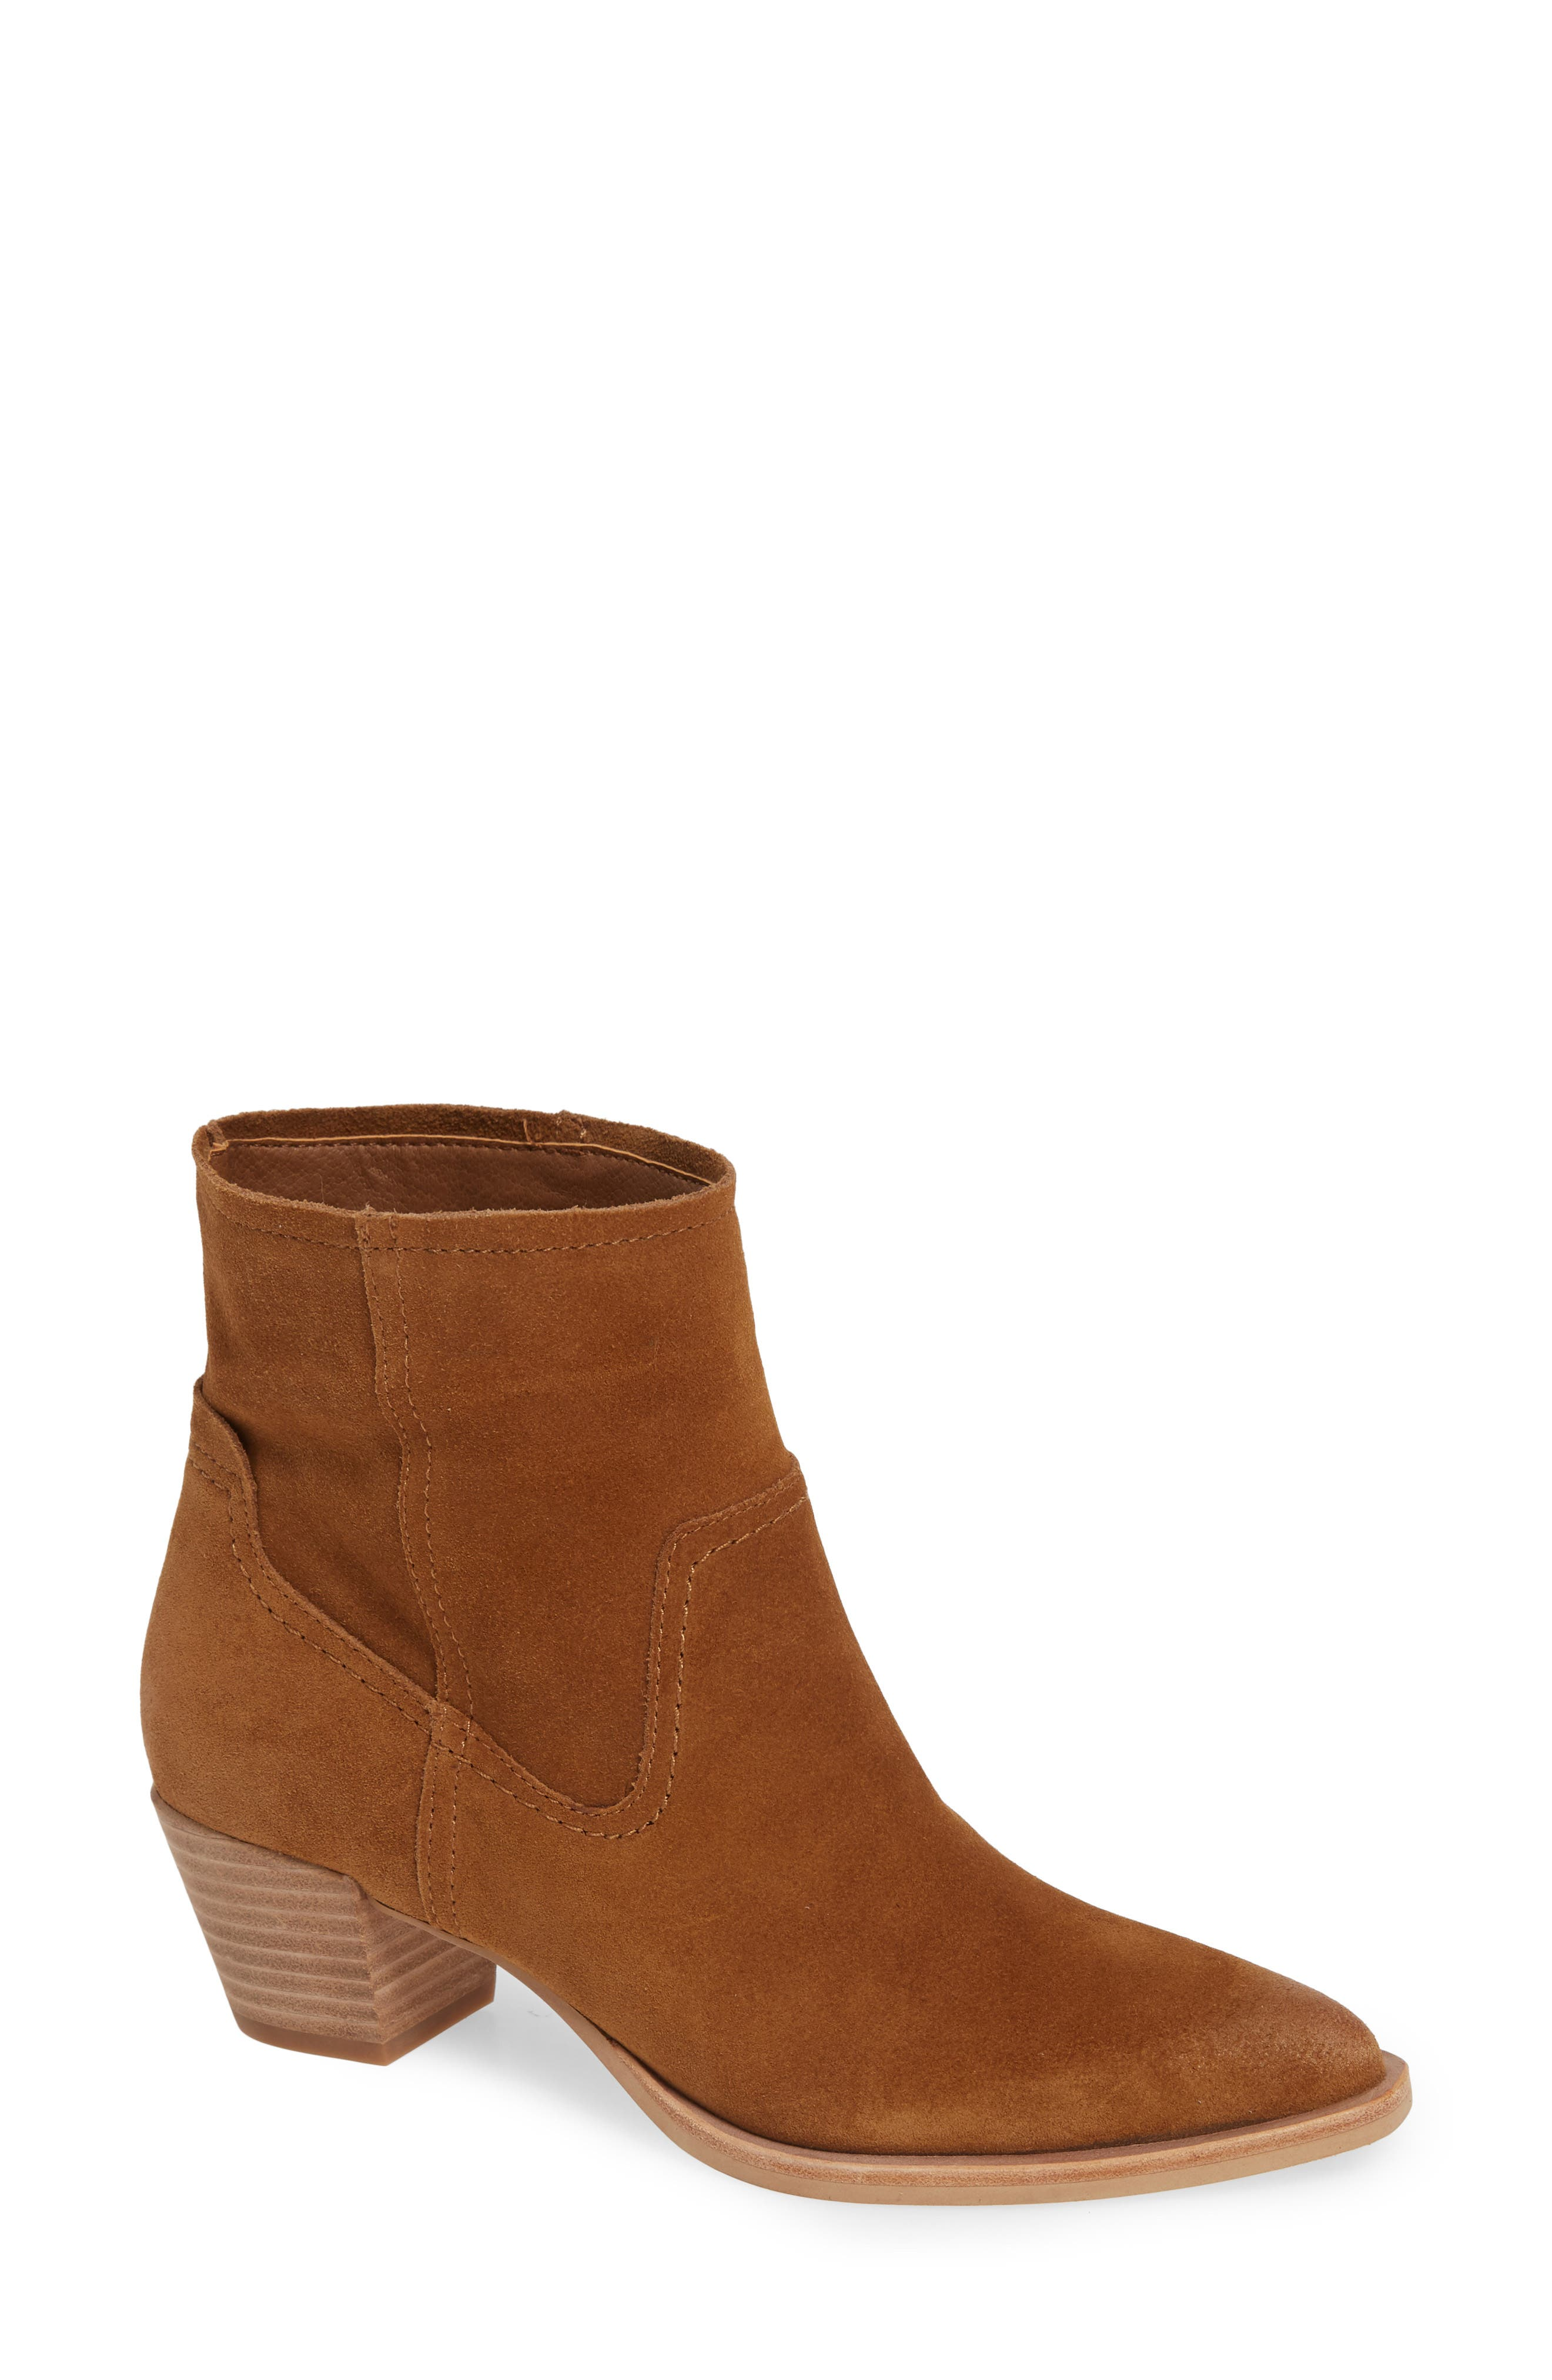 Kodie Western Bootie,                             Main thumbnail 1, color,                             200